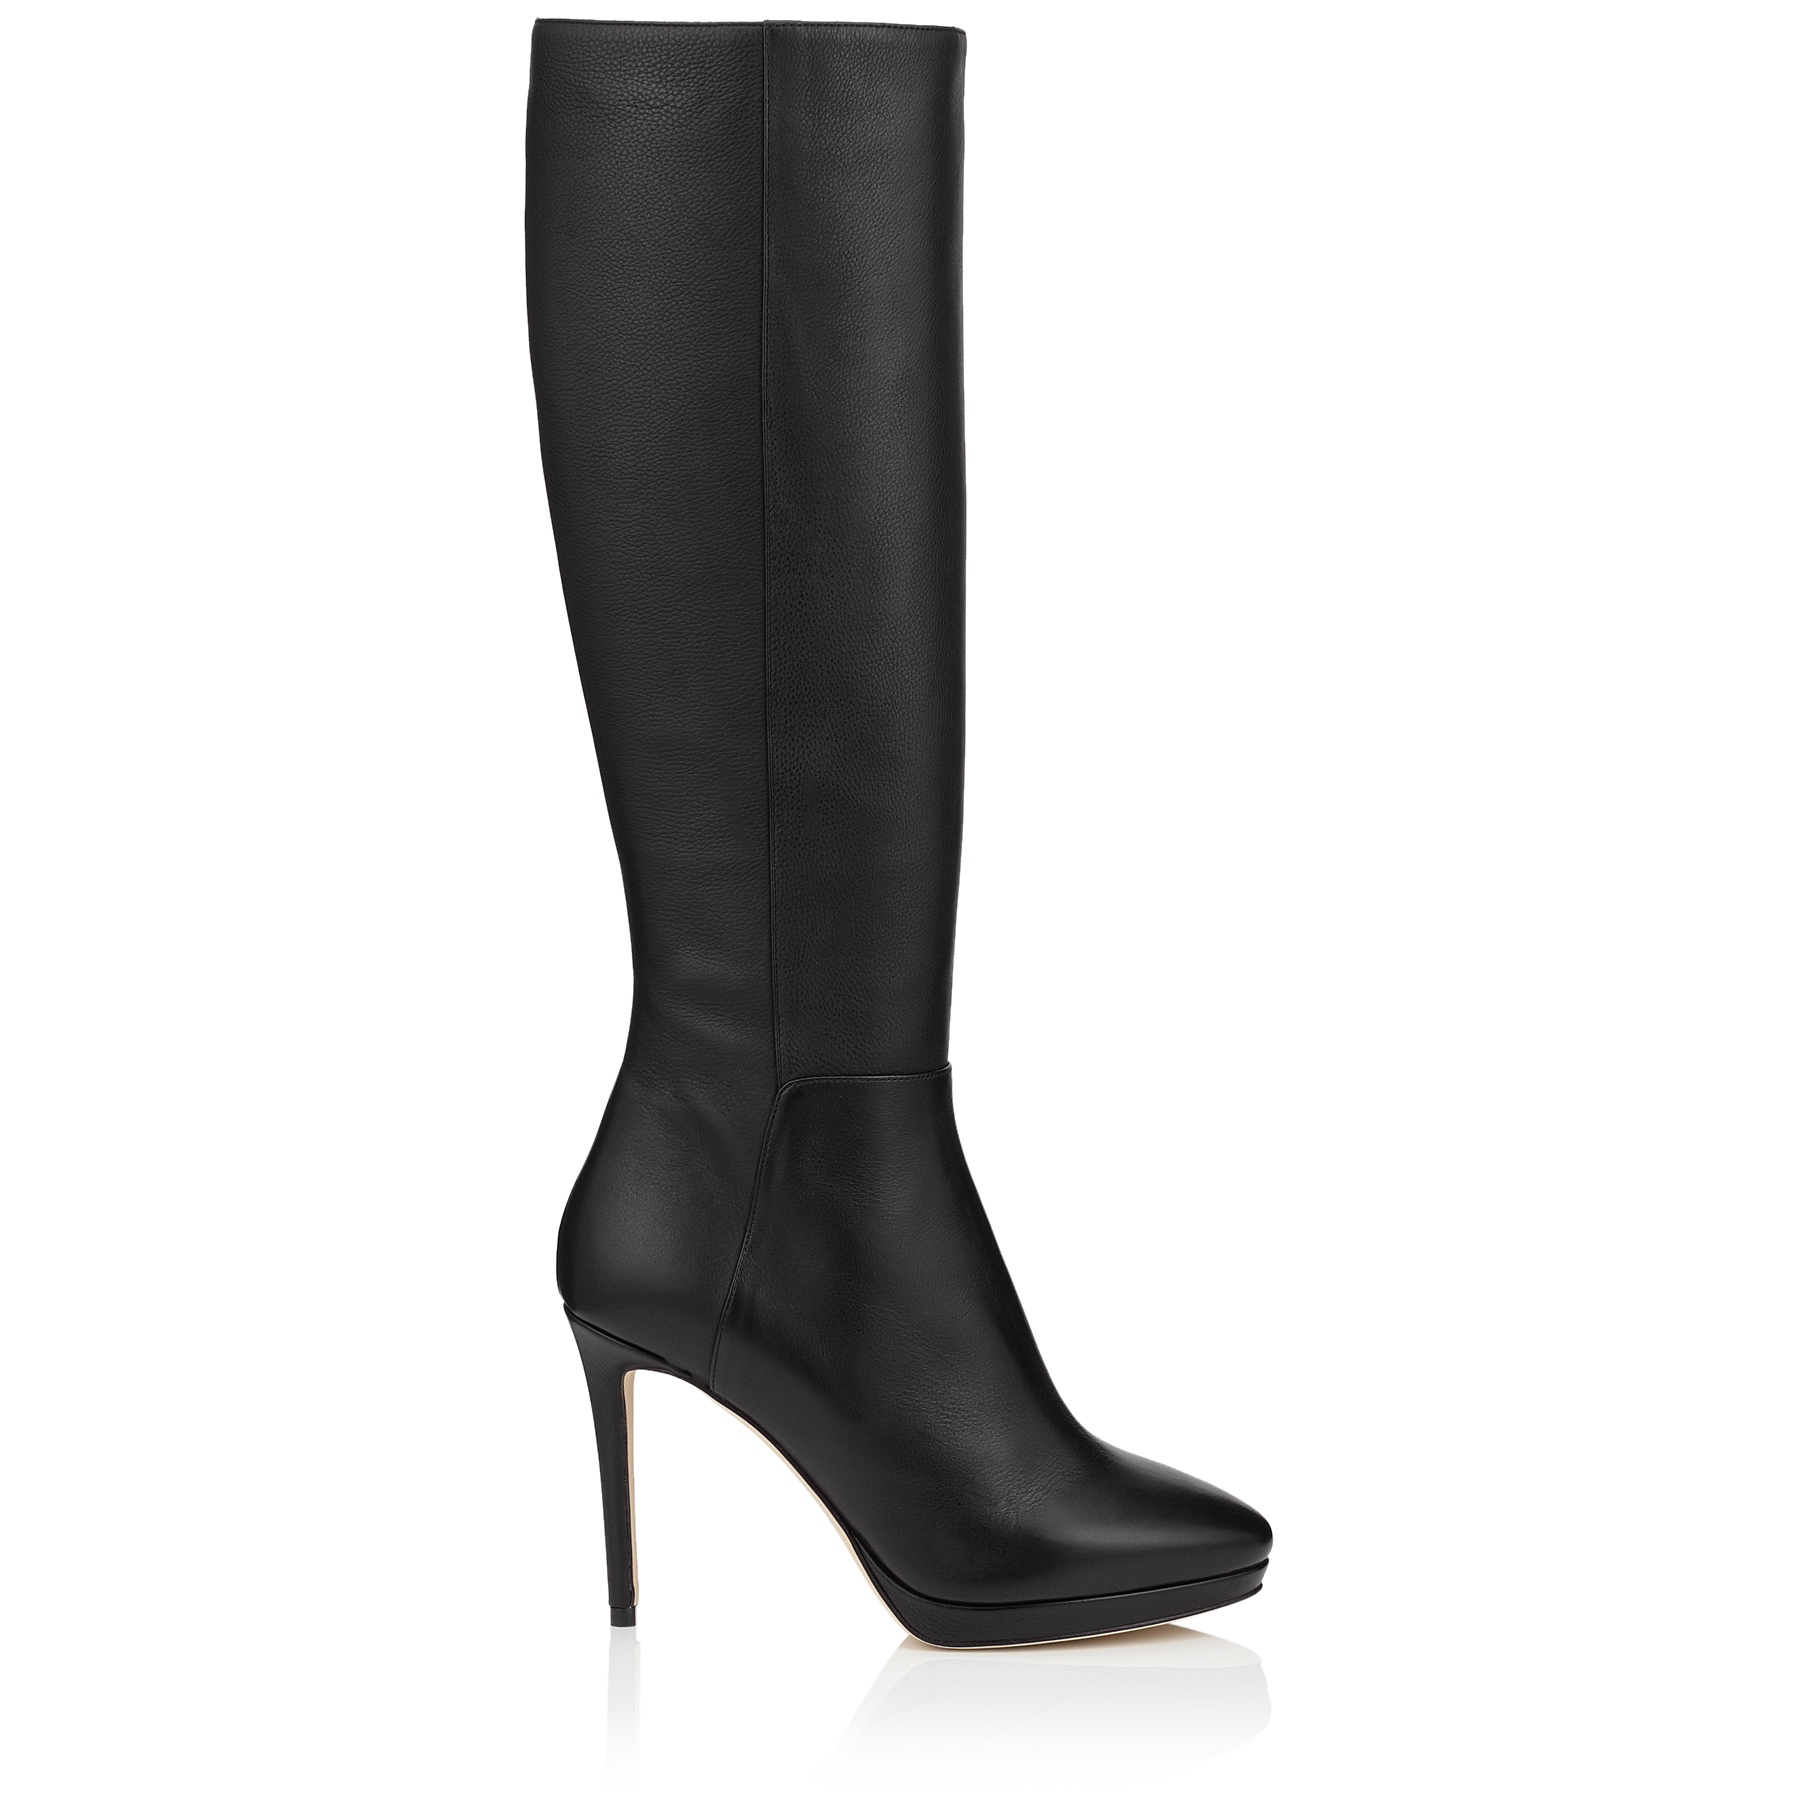 HOXTON 100 Black Grainy Calf Leather Knee High Boots by Jimmy Choo